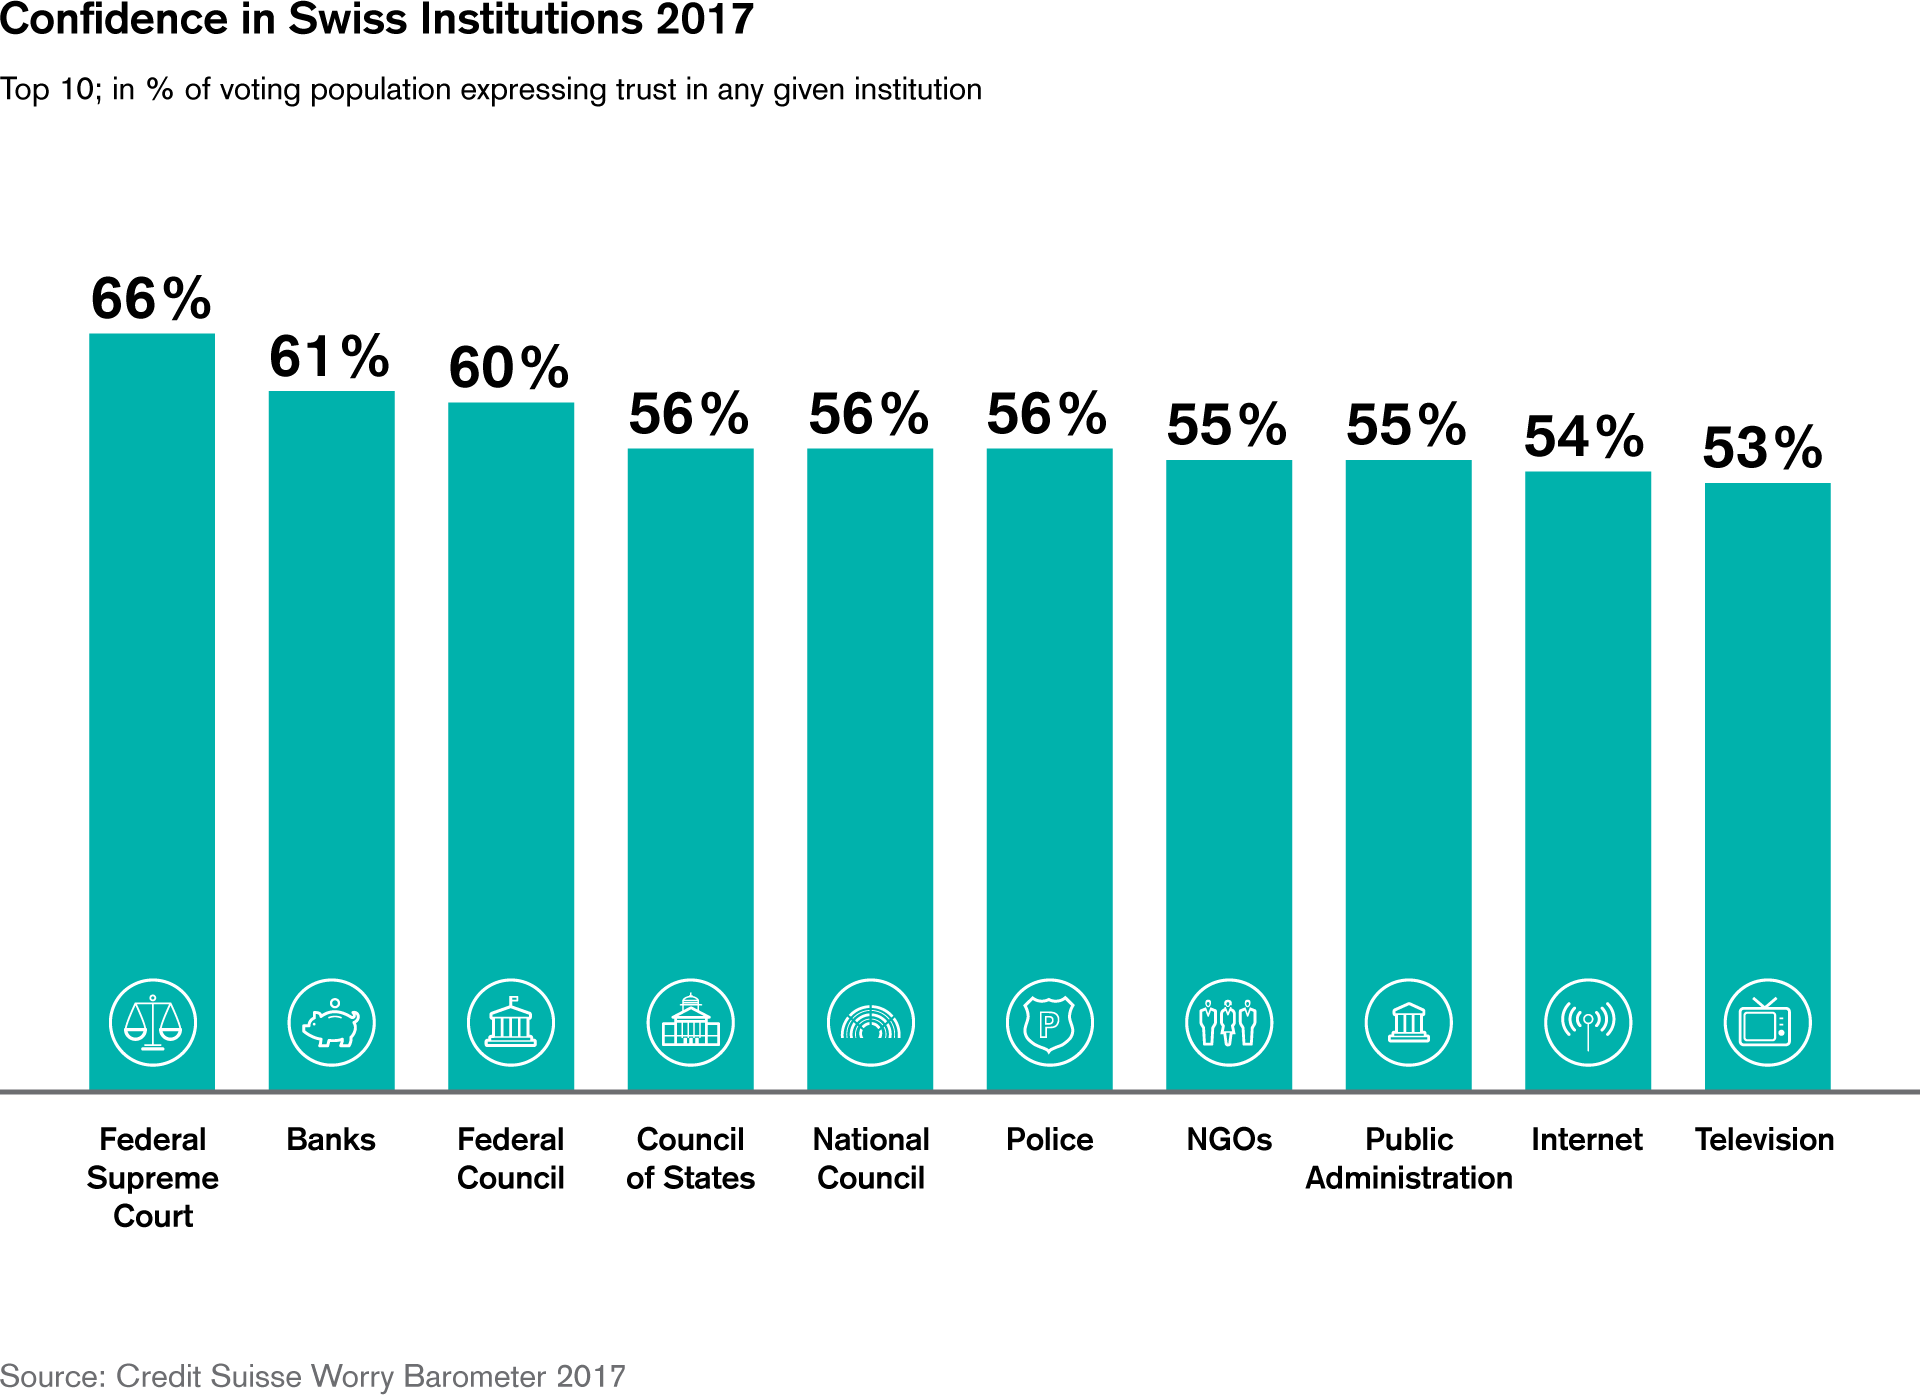 Confidence in Swiss Institutions 2017